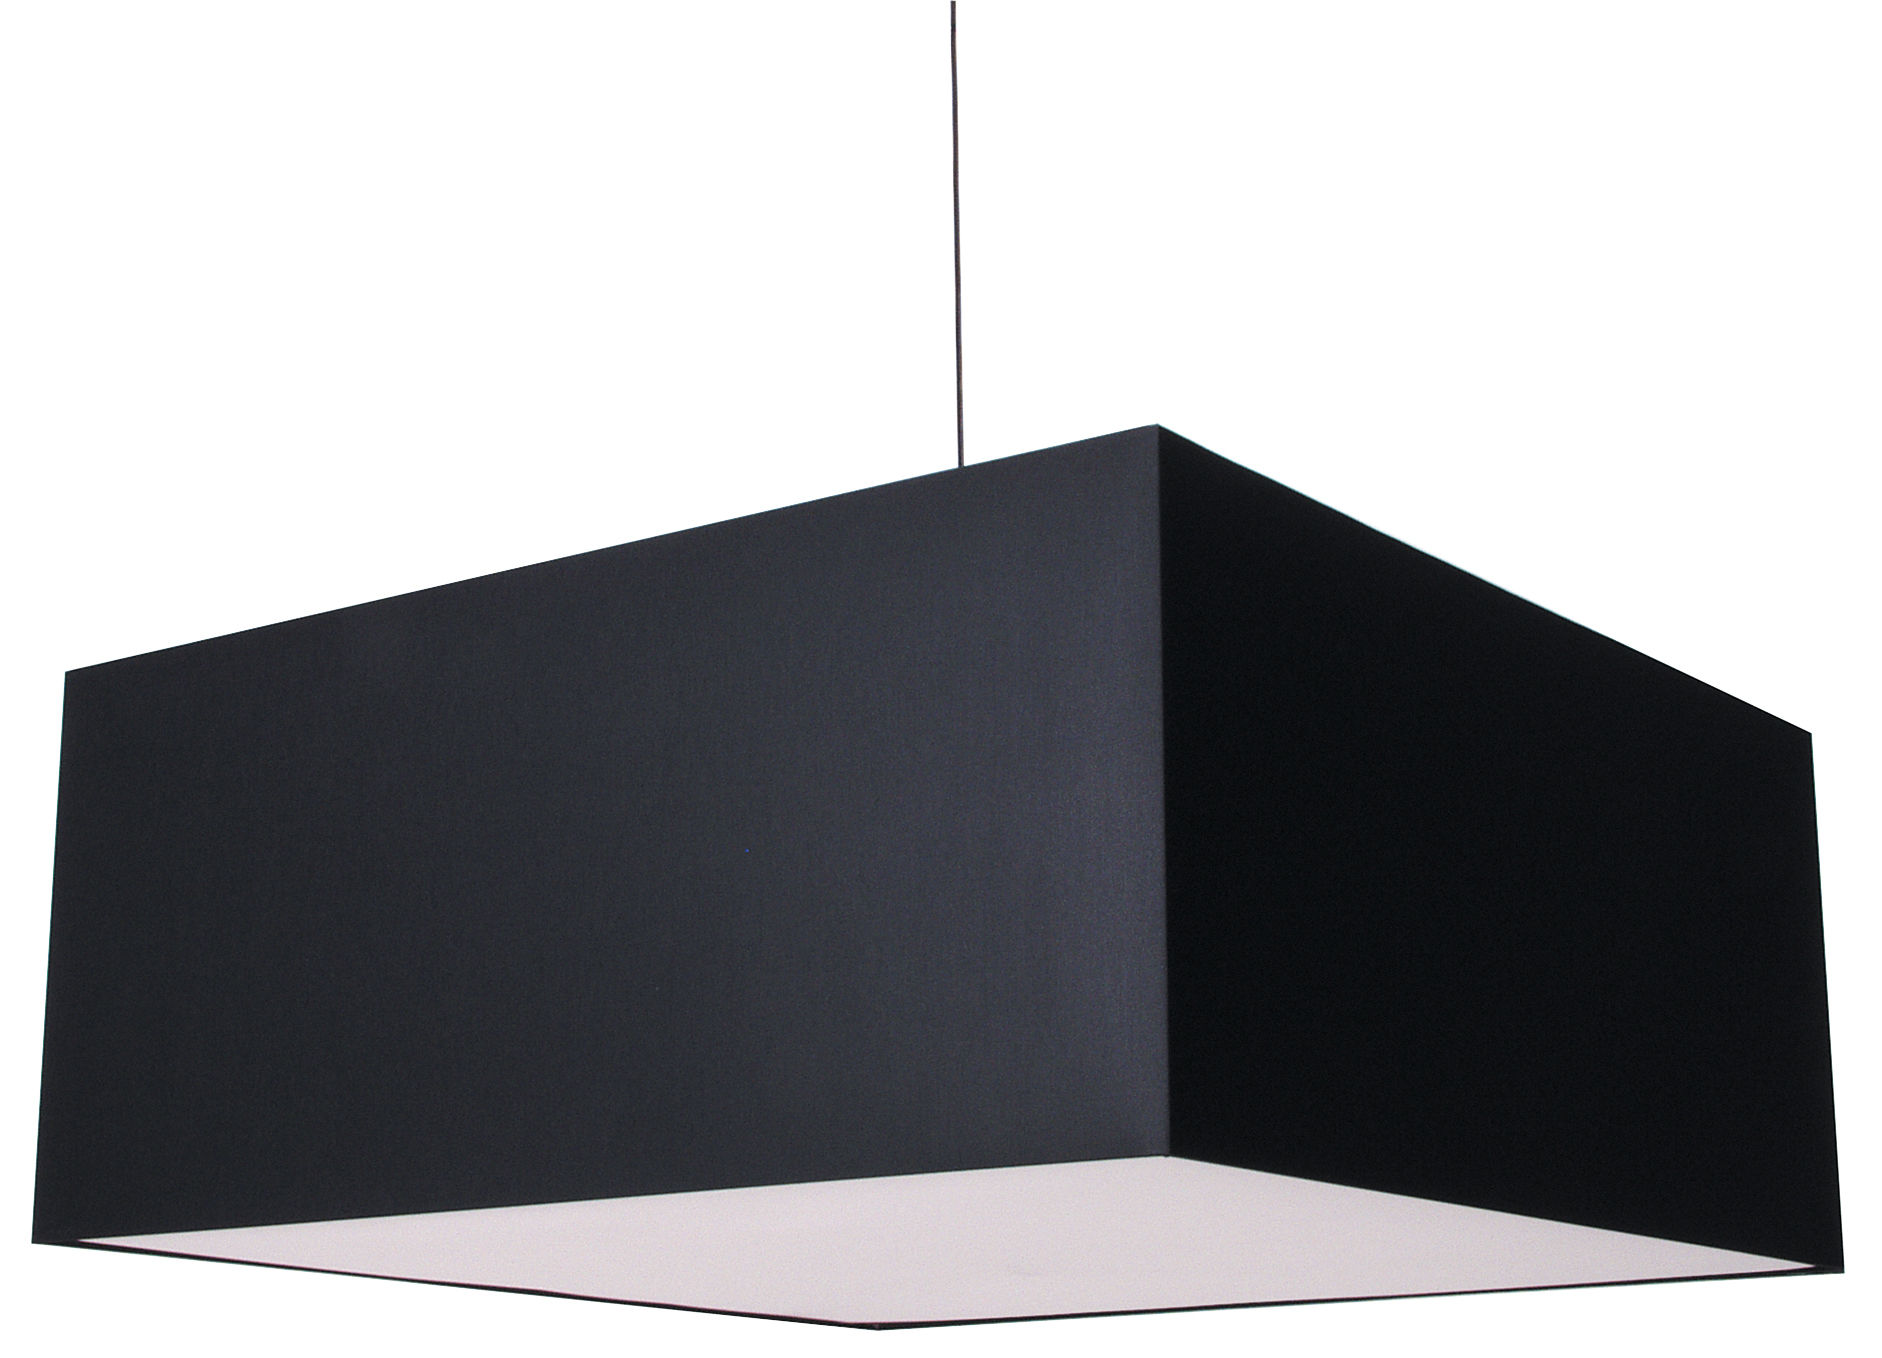 Luminaire - Suspensions - Suspension Square Boon - Moooi - Noir - Coton